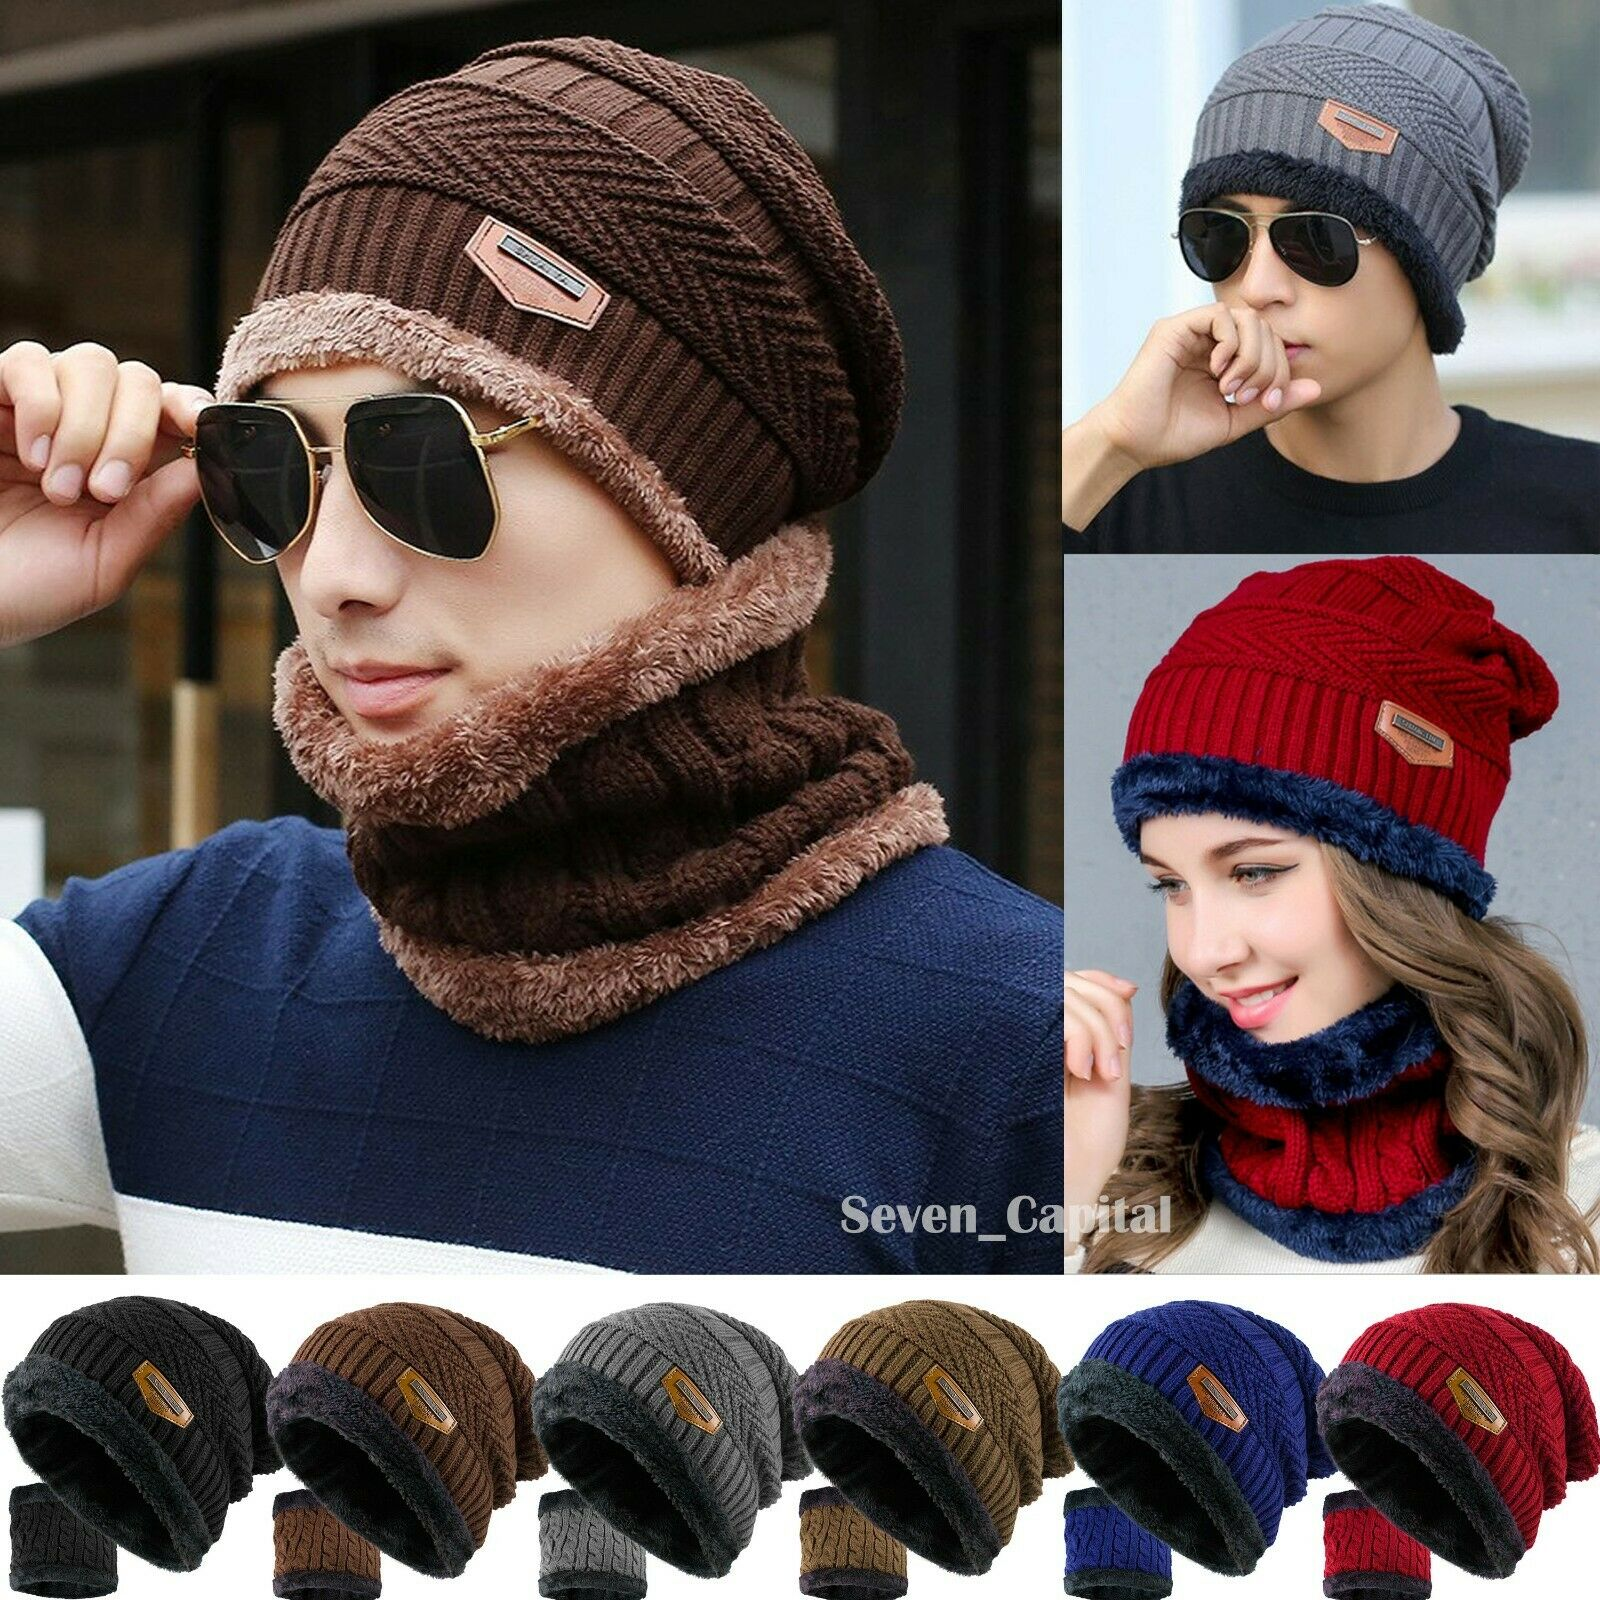 Knit Hats for Men Women Winter Womens Keep Warm Unisex Fashion Knitted Wool Hat Solid Color Black XGao Knit Hat Men Skull Caps for Men